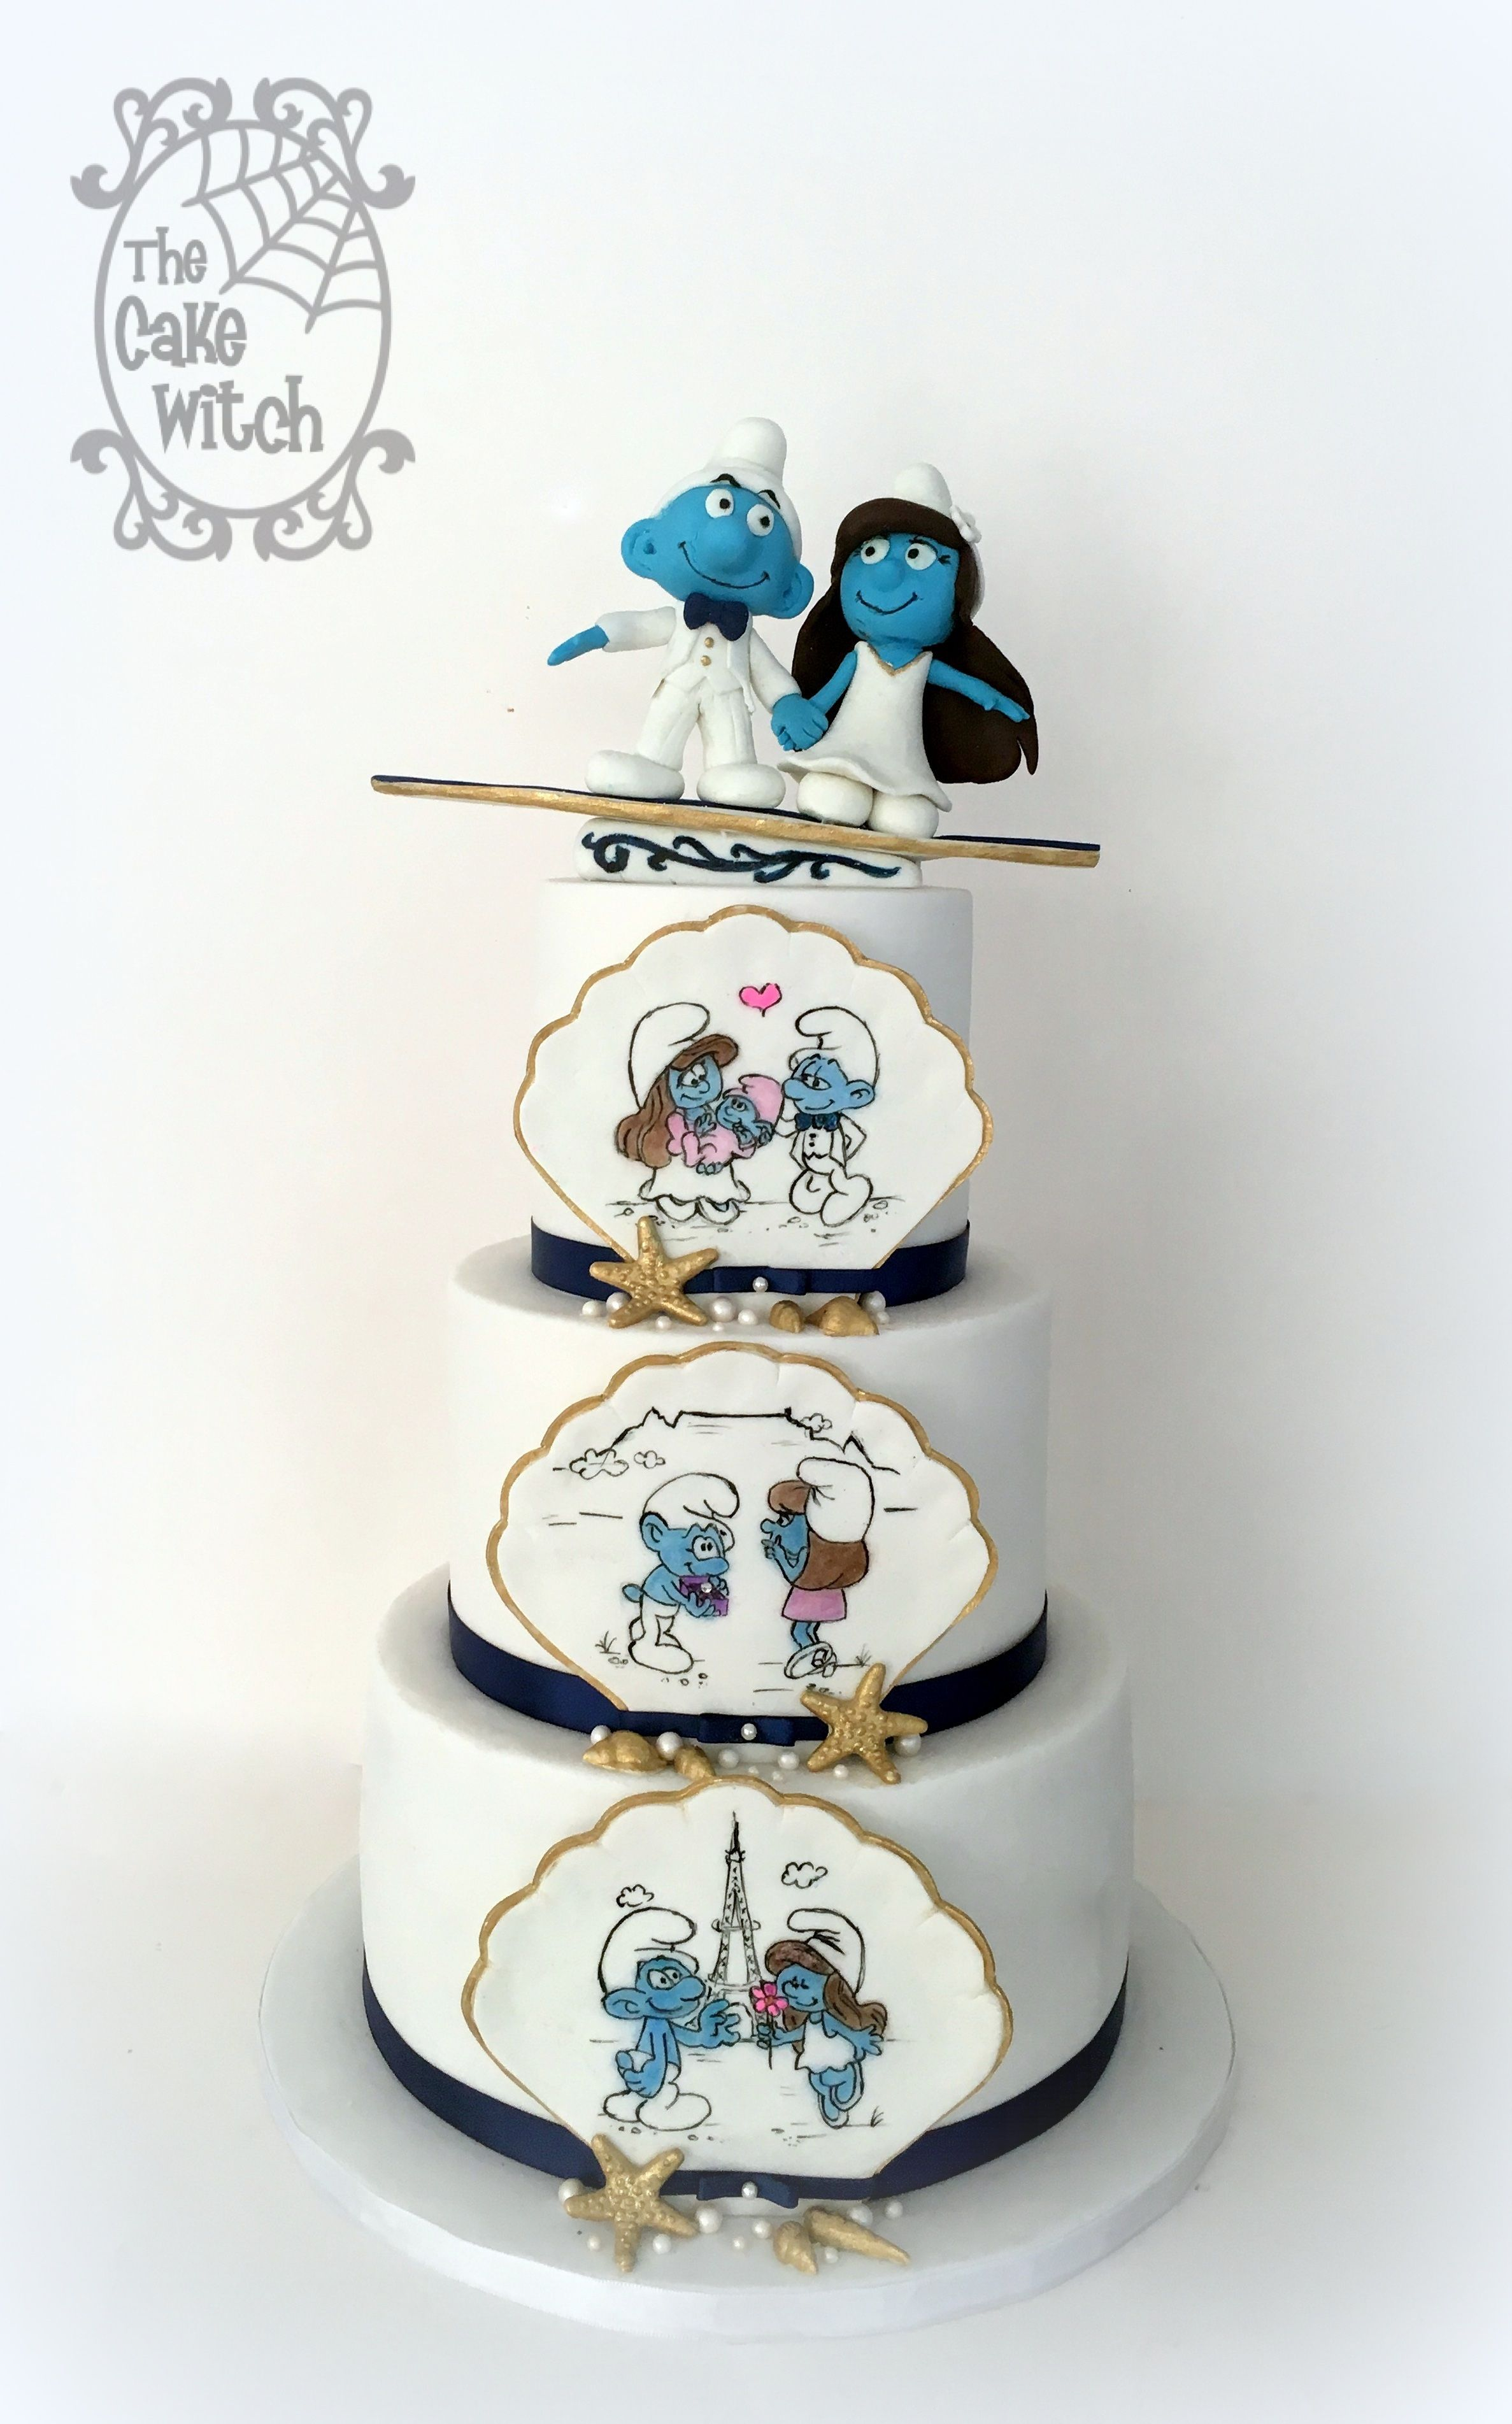 Smurf Sea Themed Wedding Cake with Surf Board | The Cake Witch - My ...